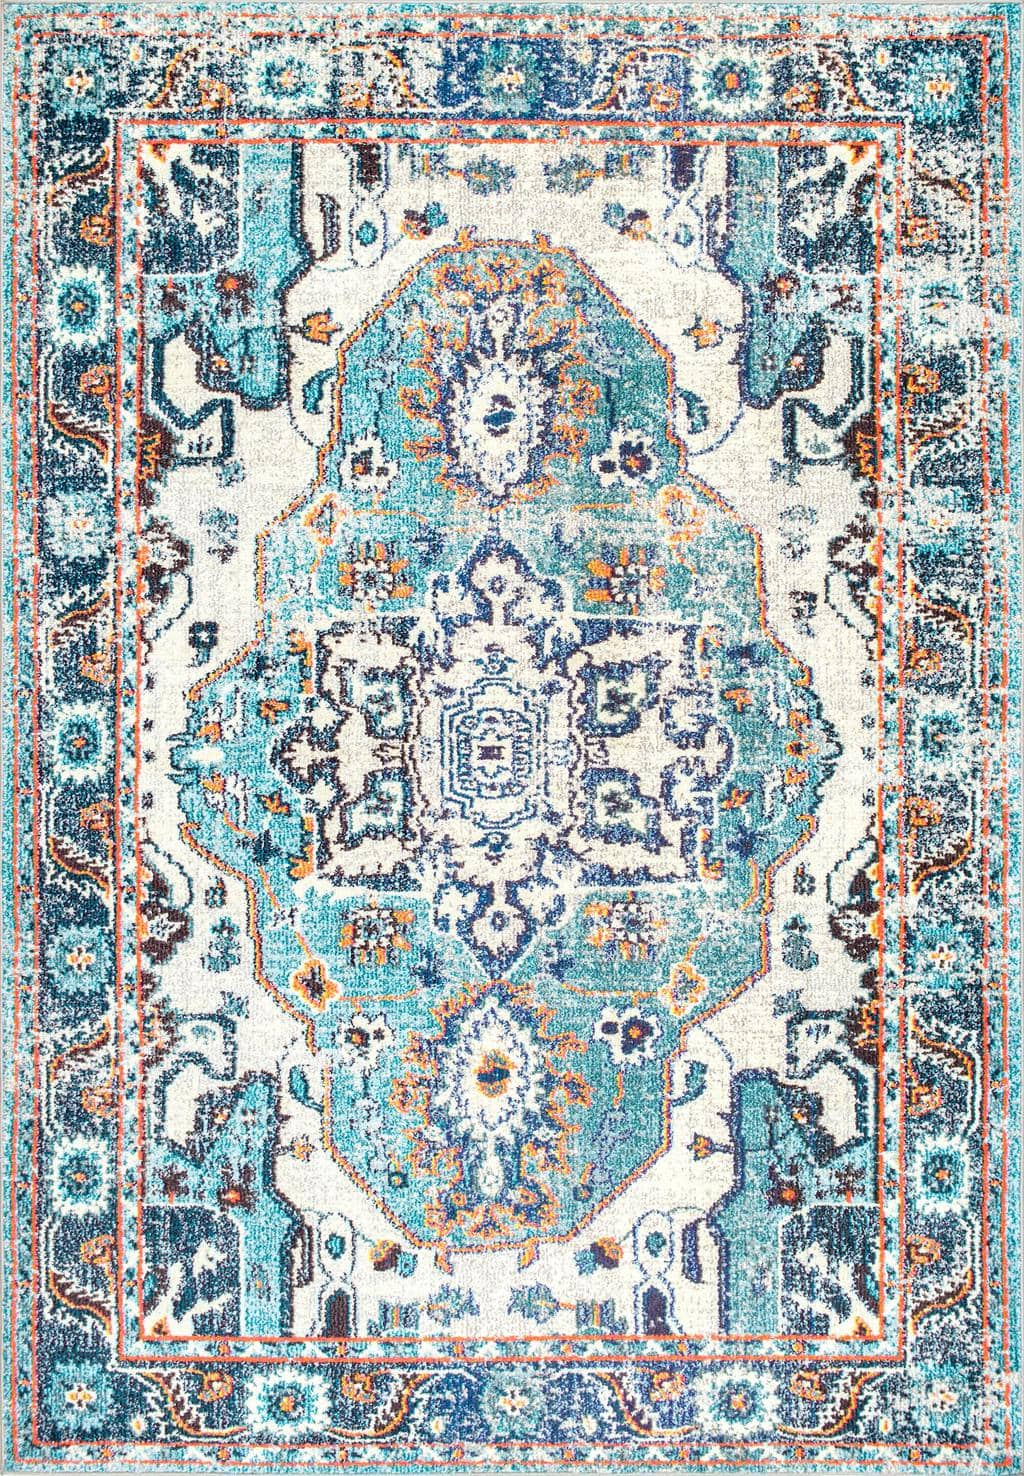 College dorm room furnishings - Mosaic medallion rug in shades of navy, light blue, orange, and cream from Rugs USA.